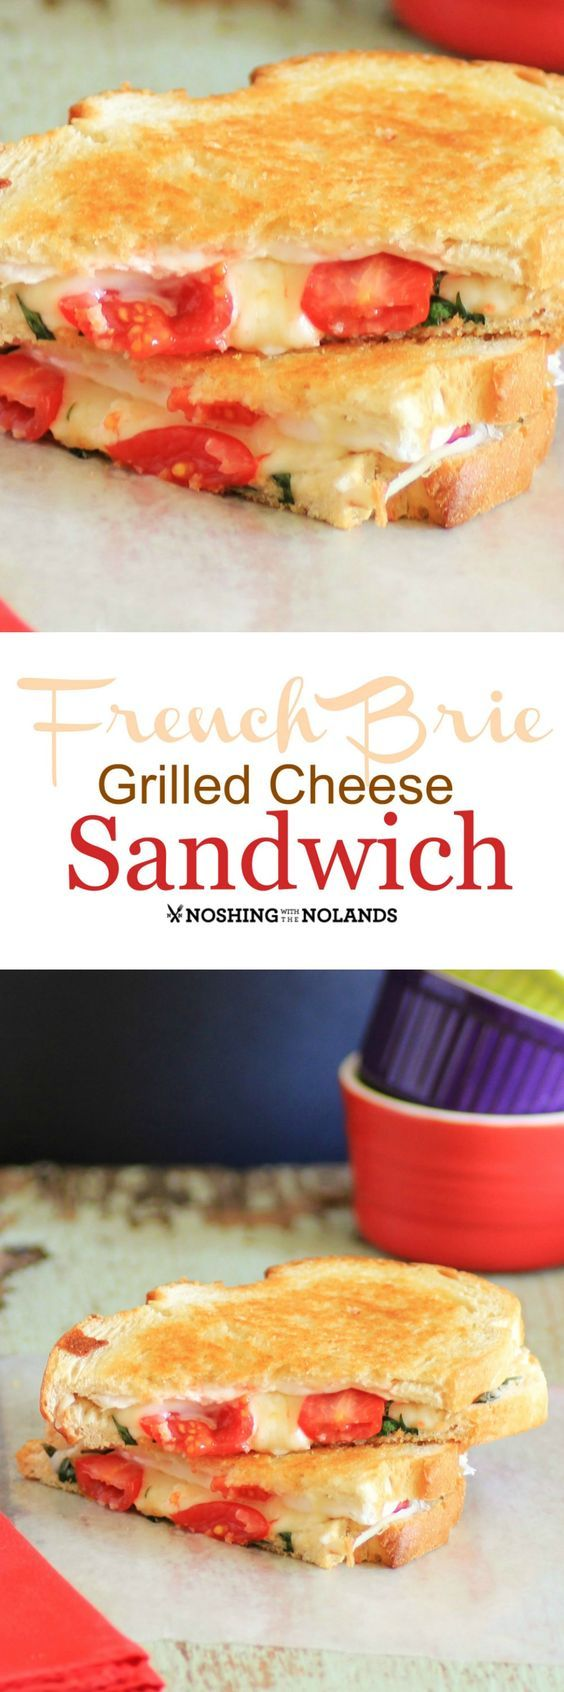 Here is my take on a grilled cheese sandwich, the French Brie Grilled Cheese Sandwich. This is a delicious and easy sandwich to make.